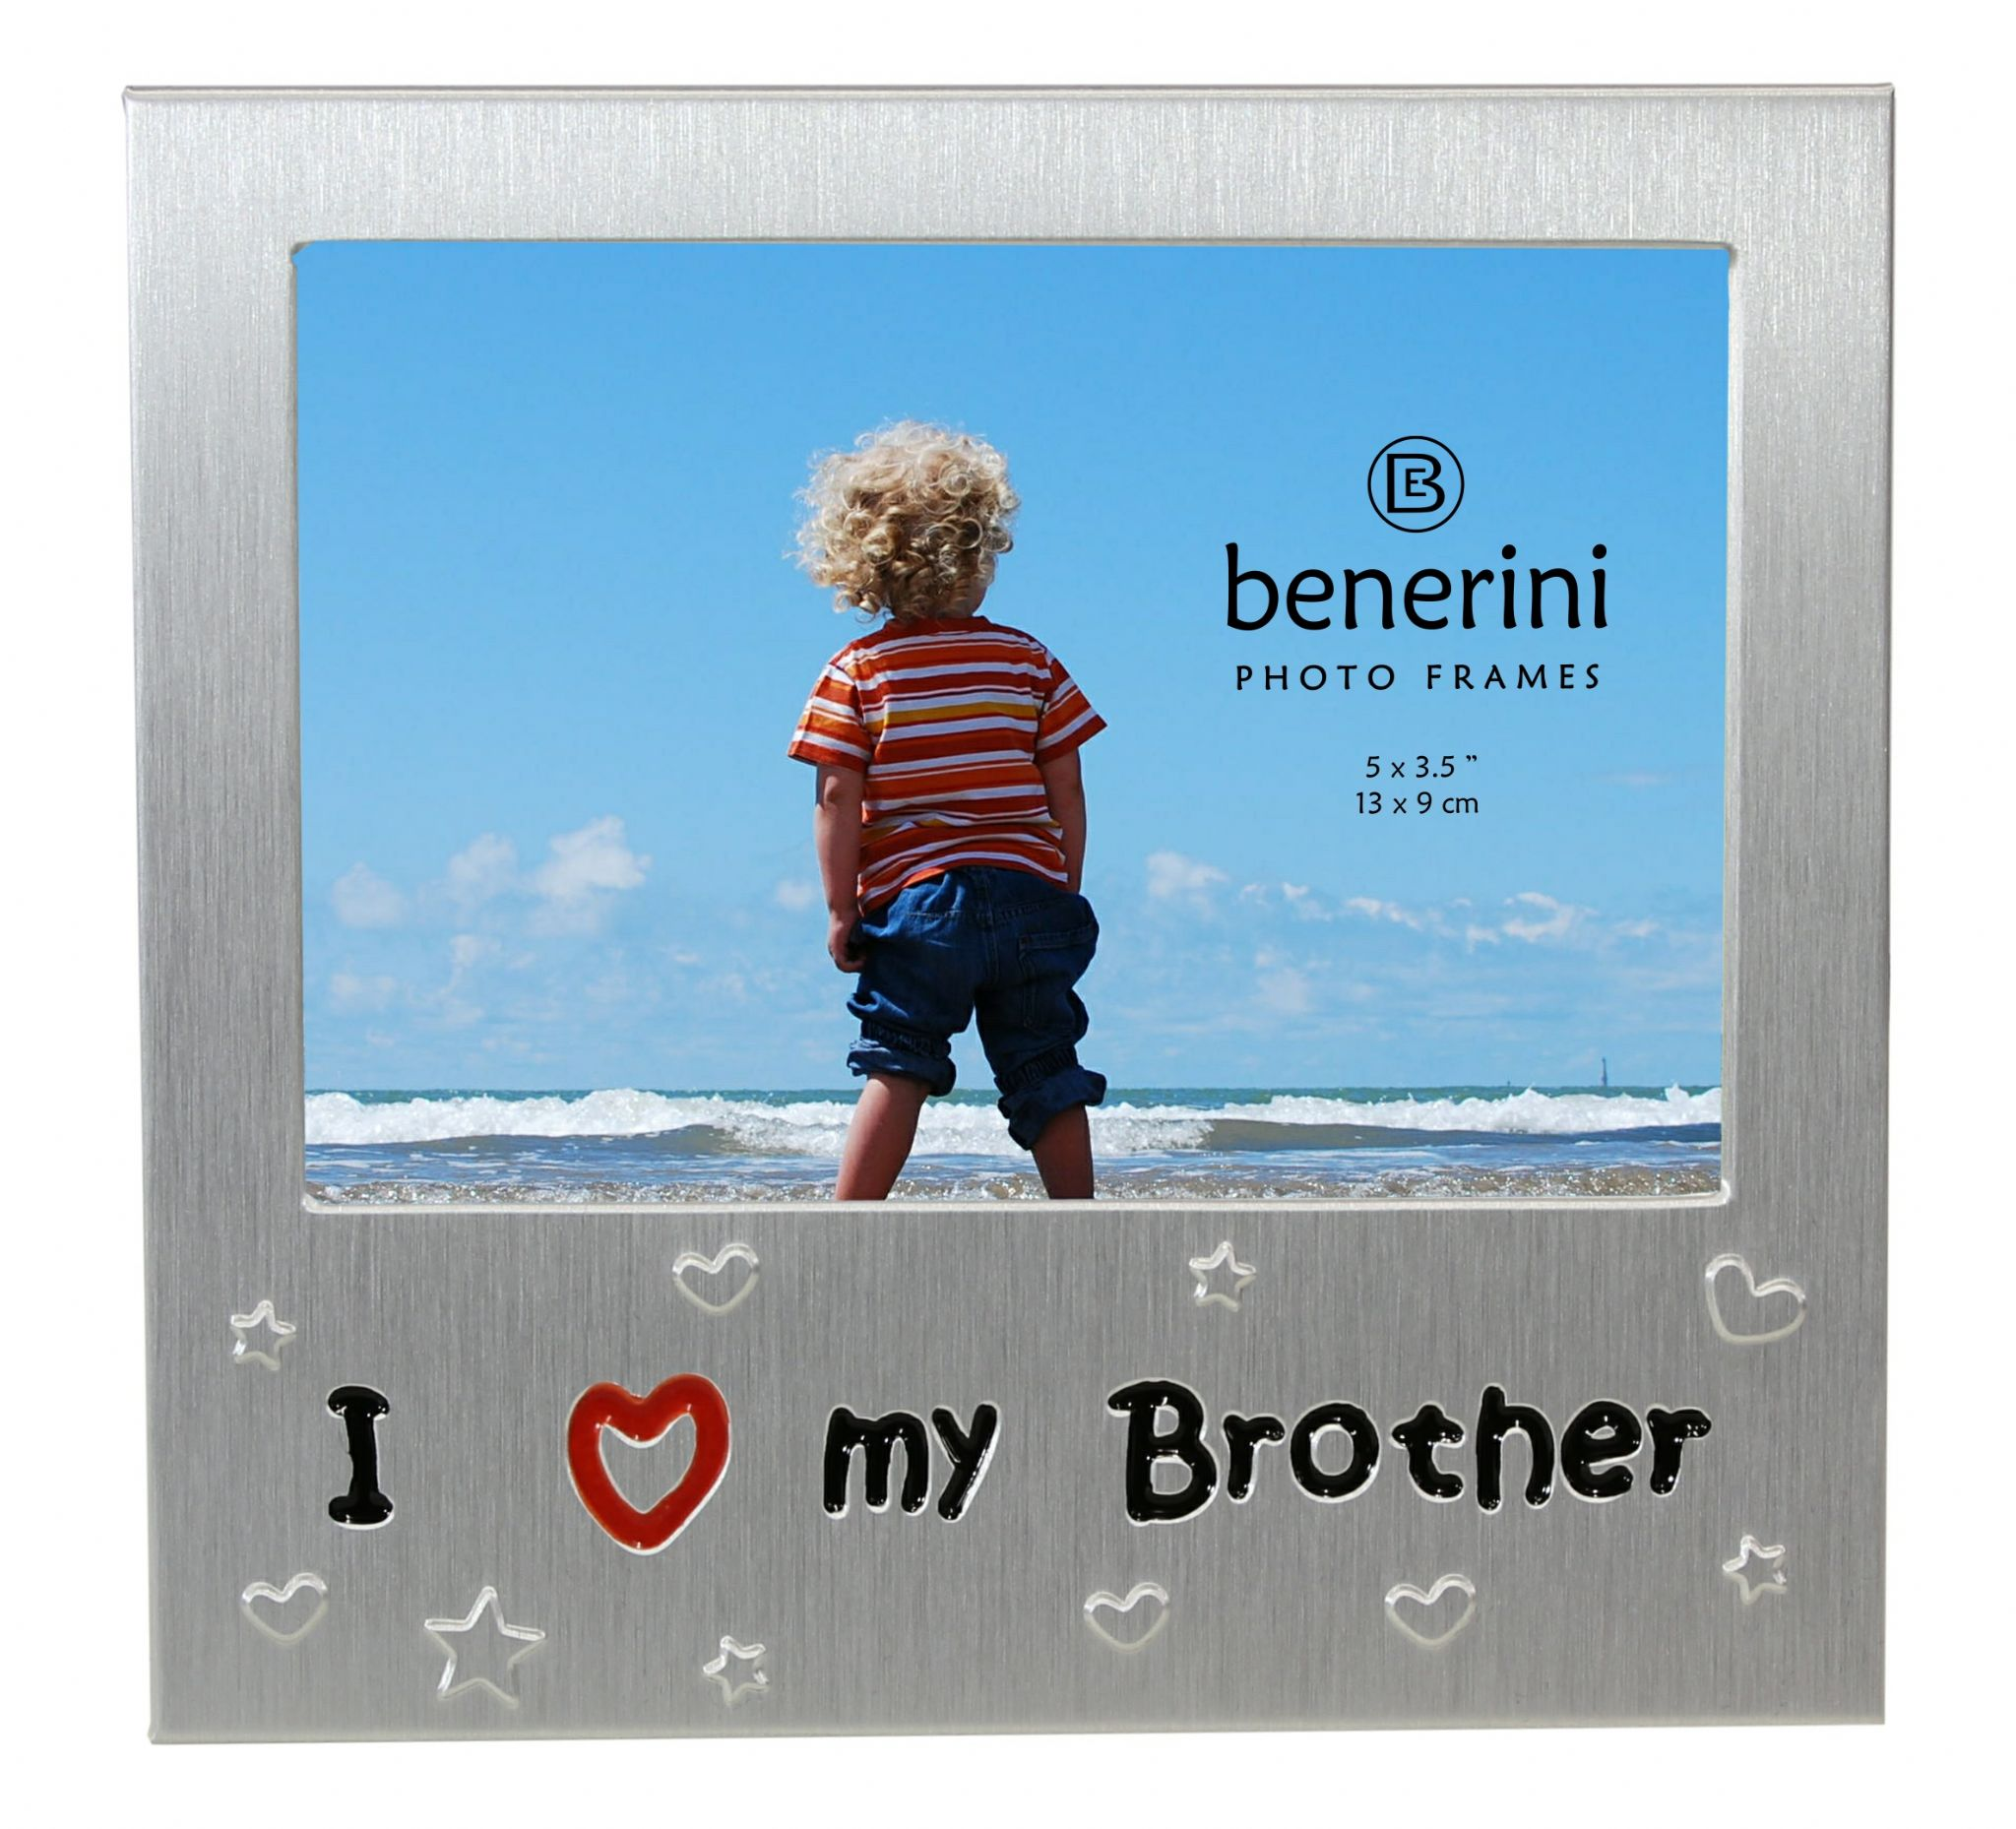 I Love My Brother Photo Frame 5 X 35 13 X 9 Cm